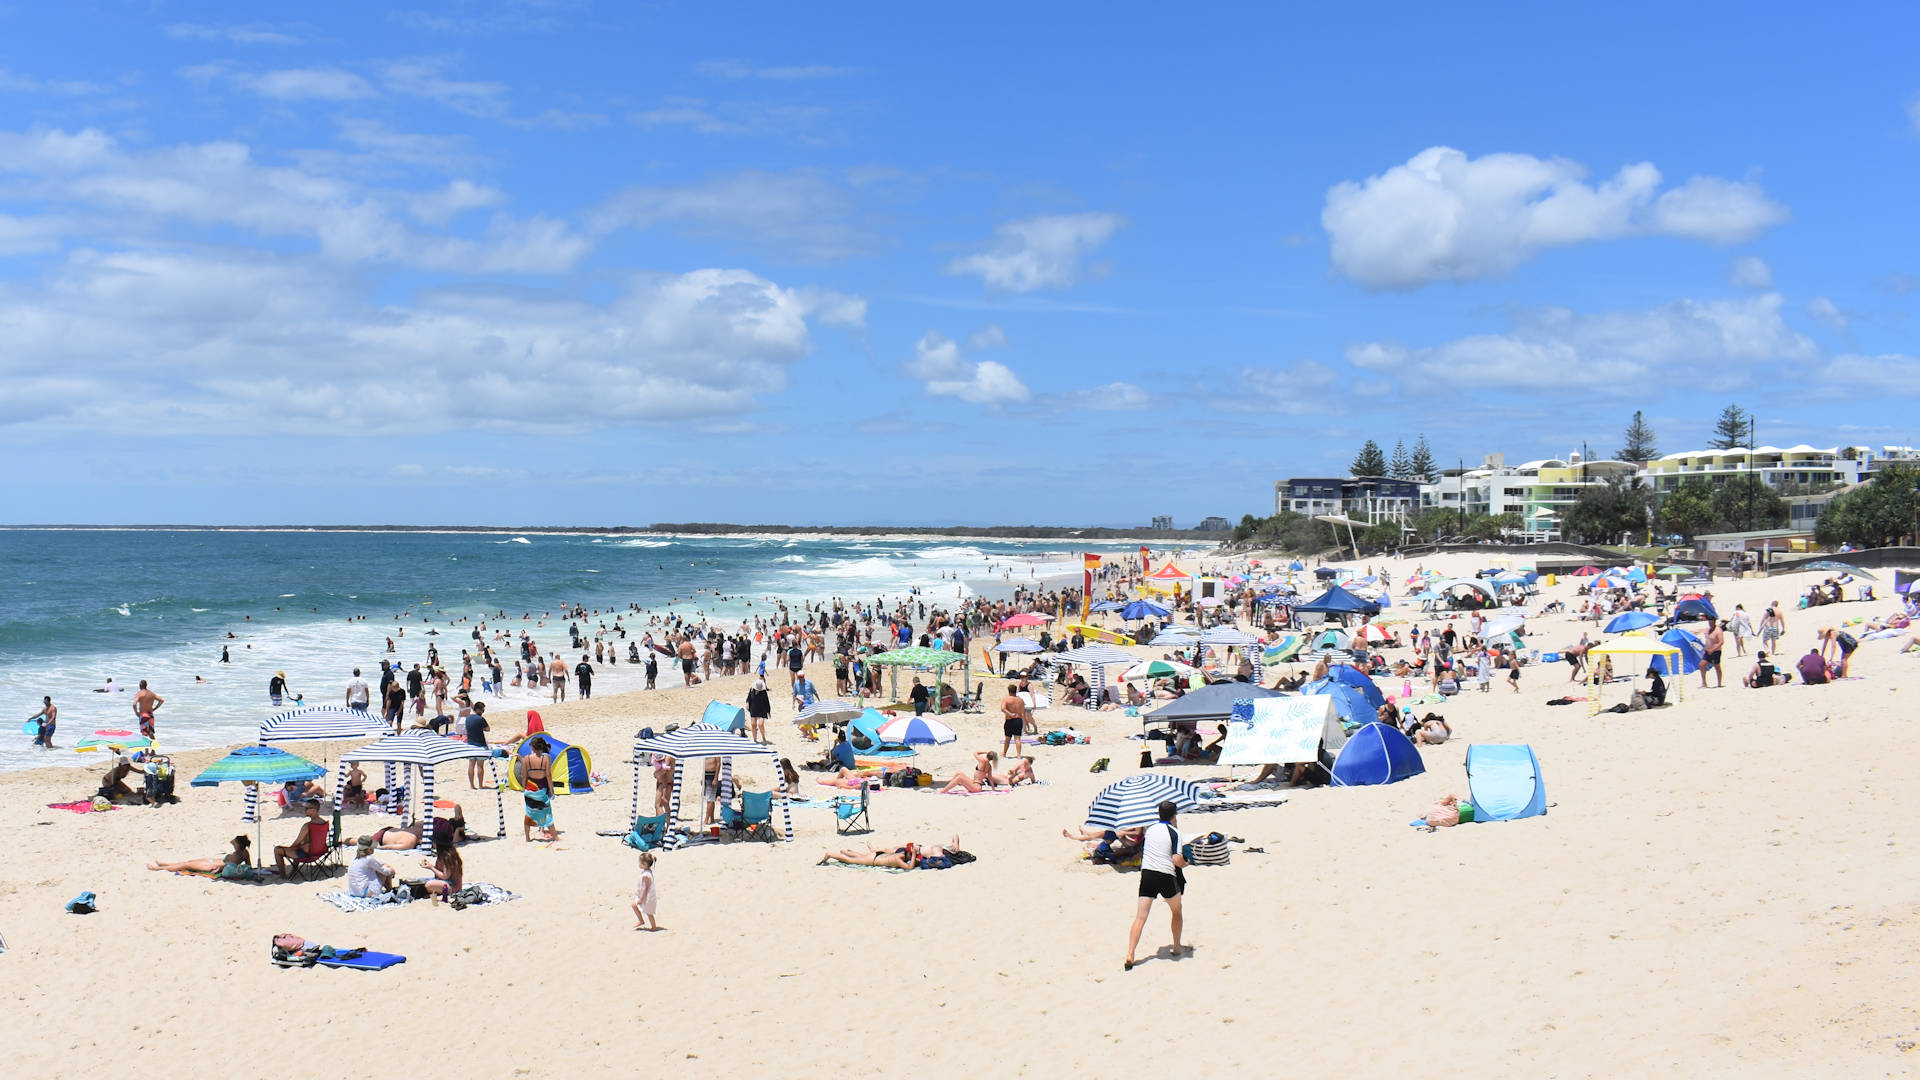 Kings Beach in Caloundra with a crowd of beach goers at the patrolled beach section